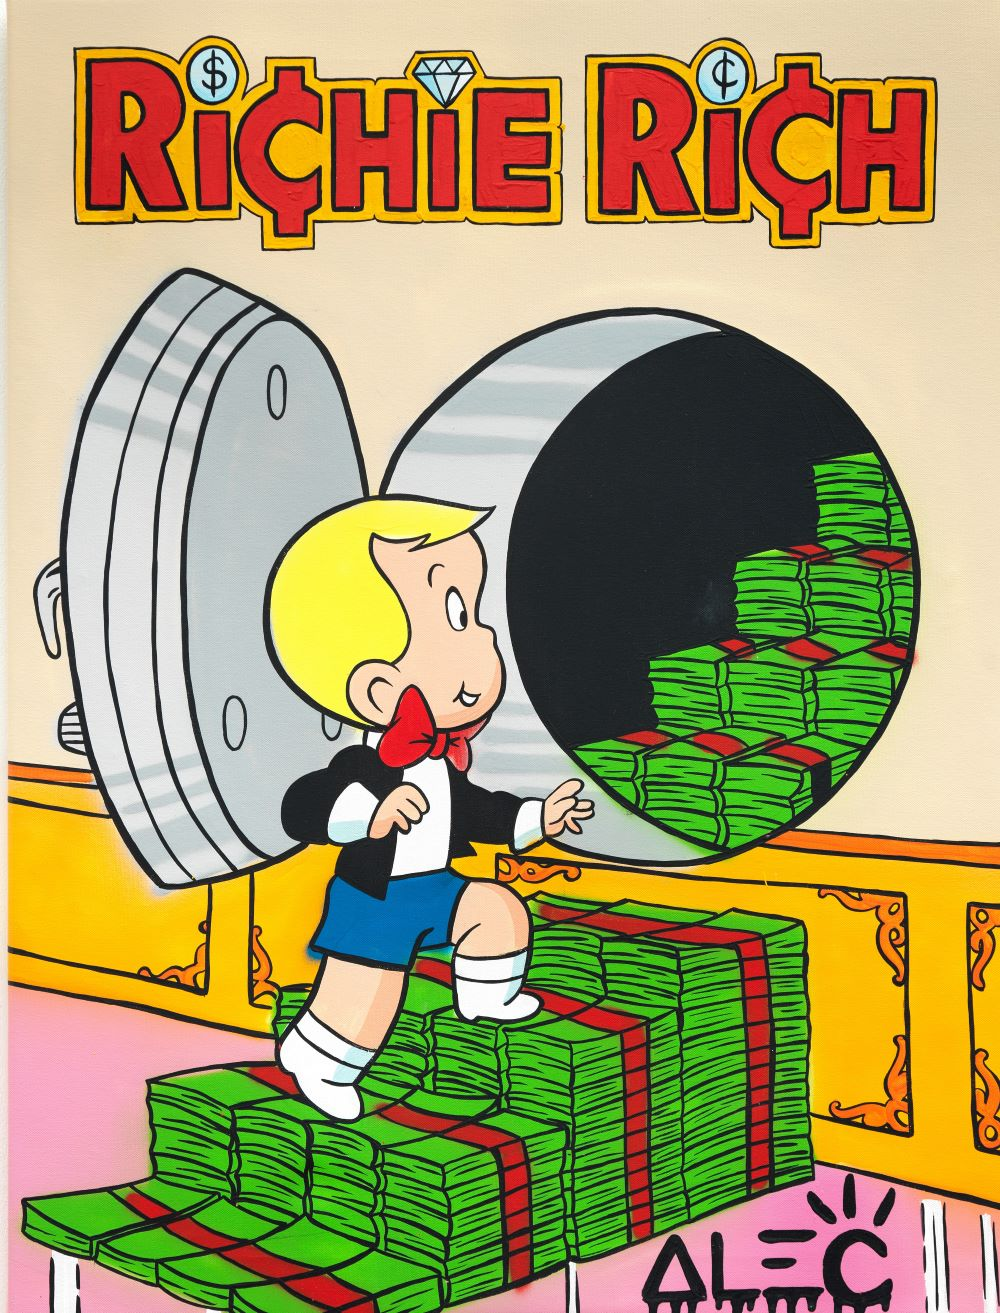 Richie opening safe with bills  - Alec Monopoly - Eden Gallery